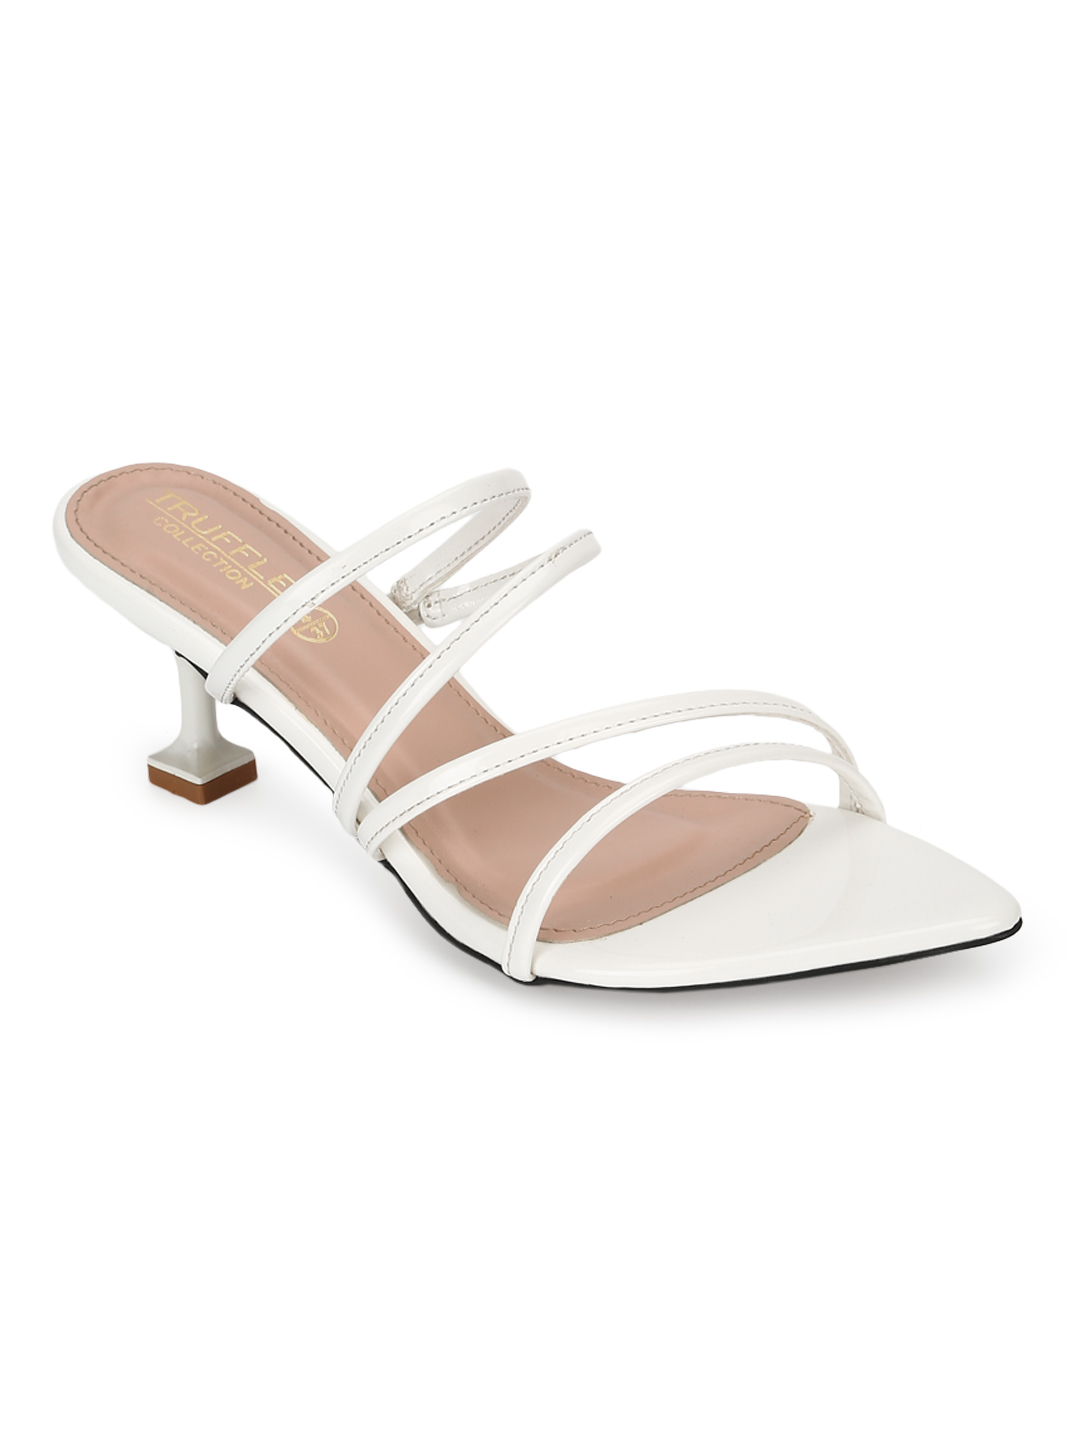 Truffle Collection | Truffle Collection White Patent Pointy Toe Kitten Heels